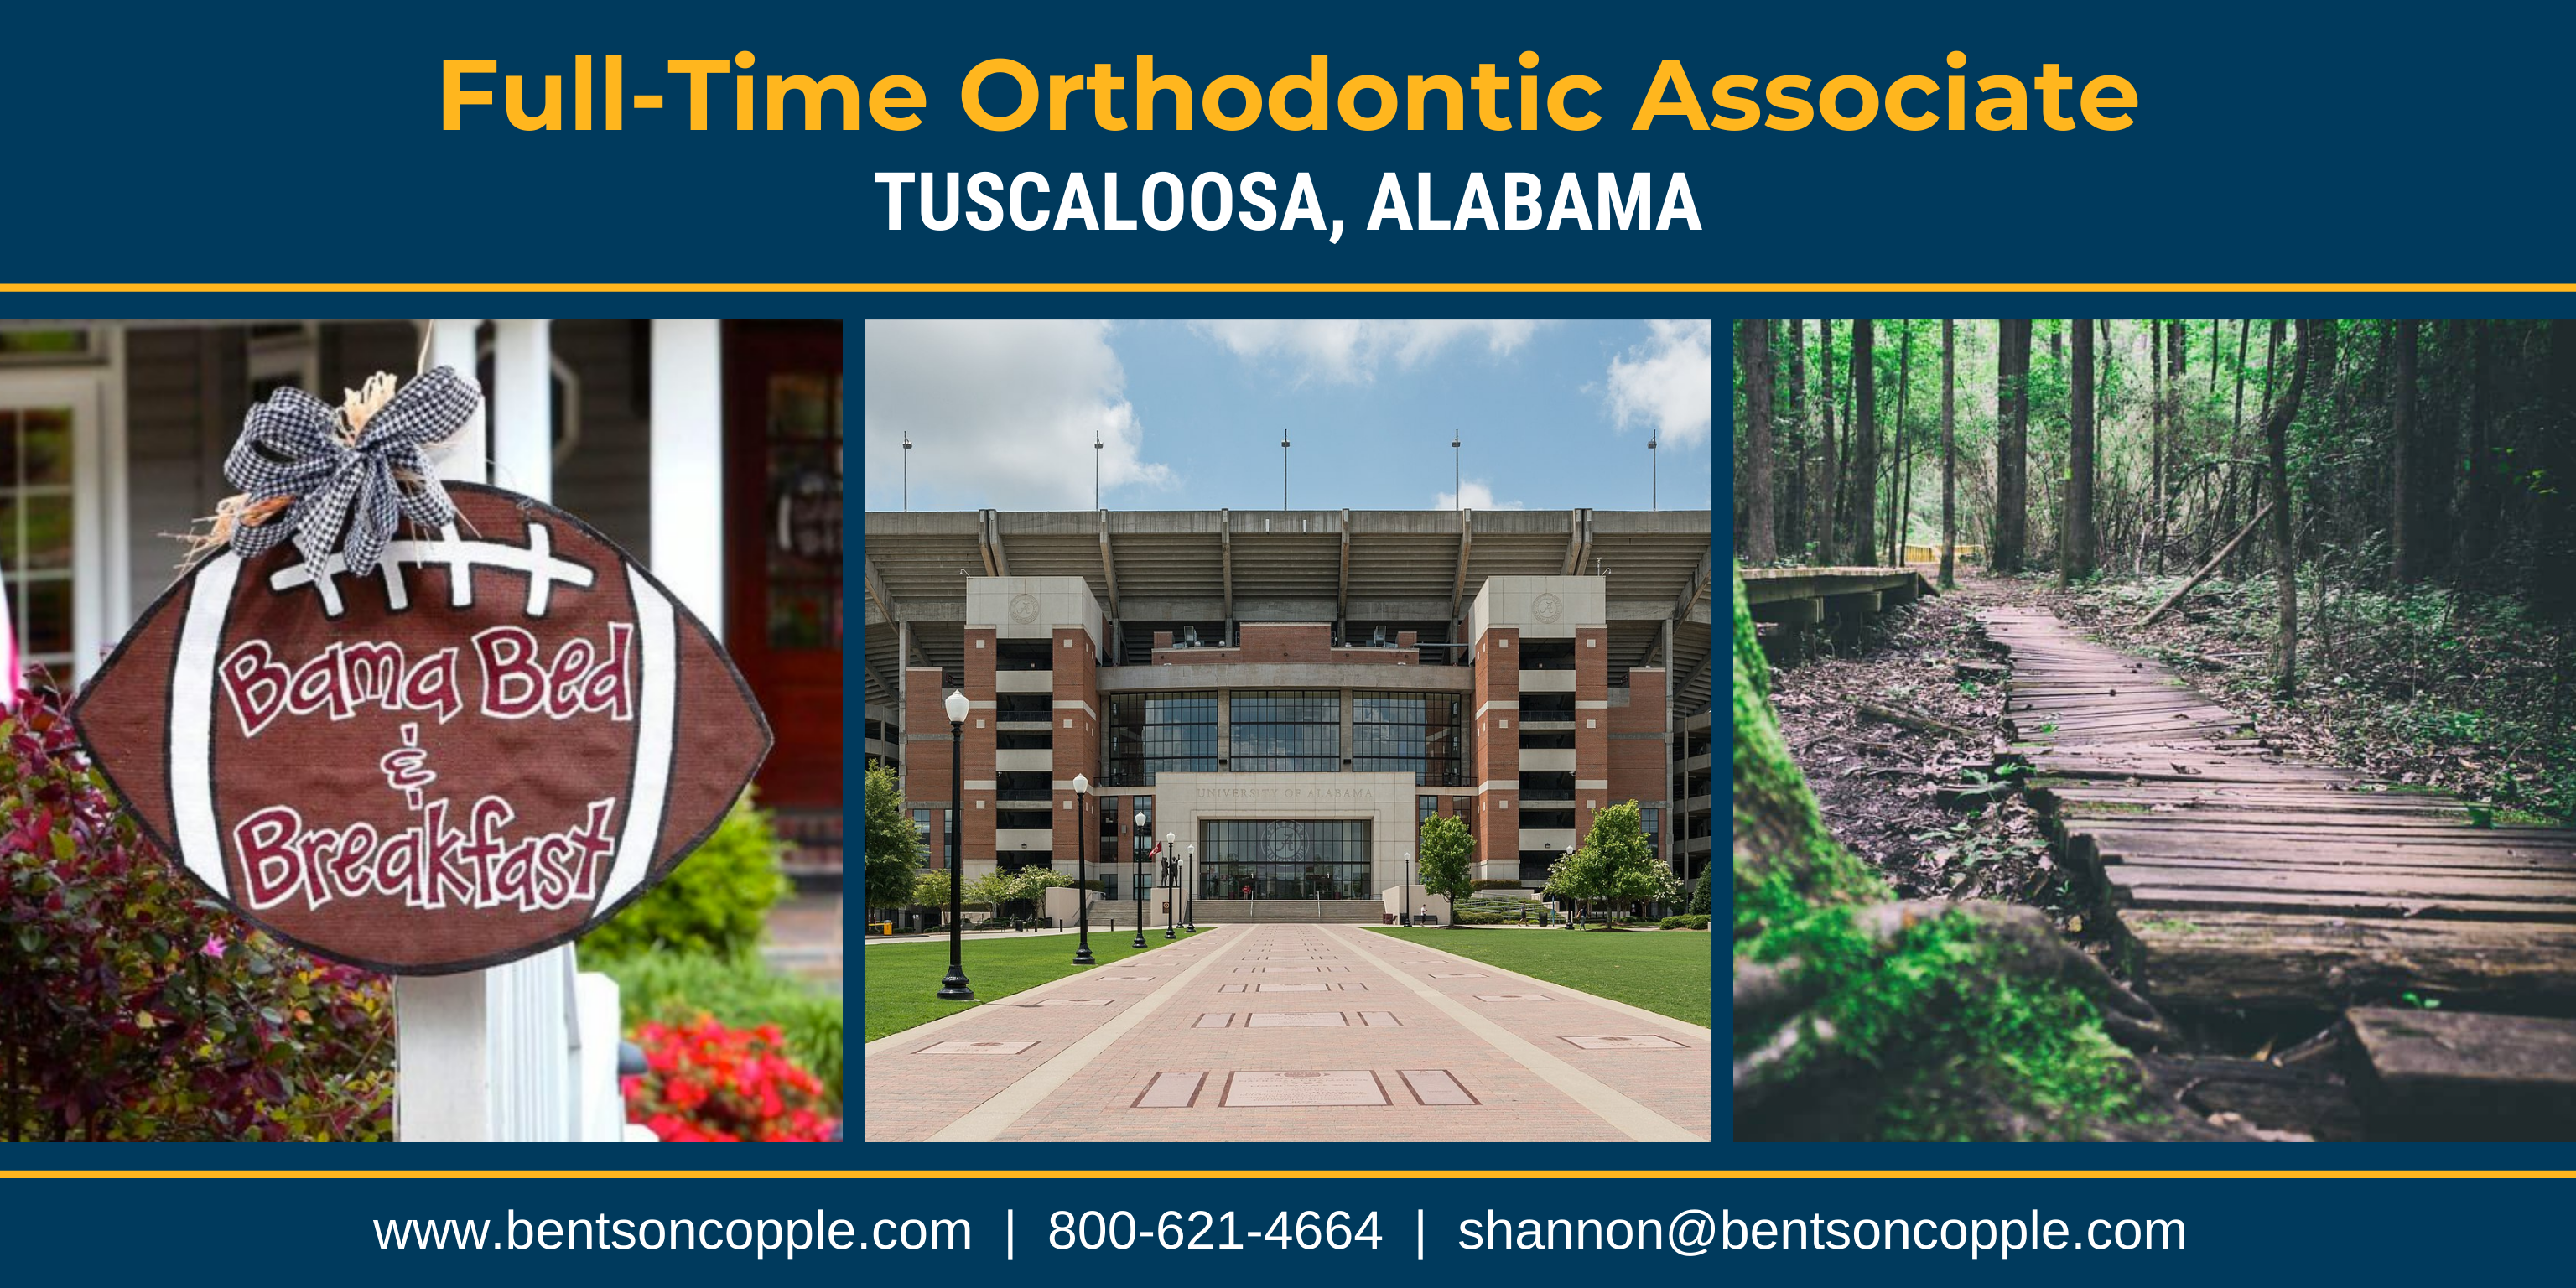 Full-Time Orthodontic Associate Needed in Tuscaloosa, Alabama